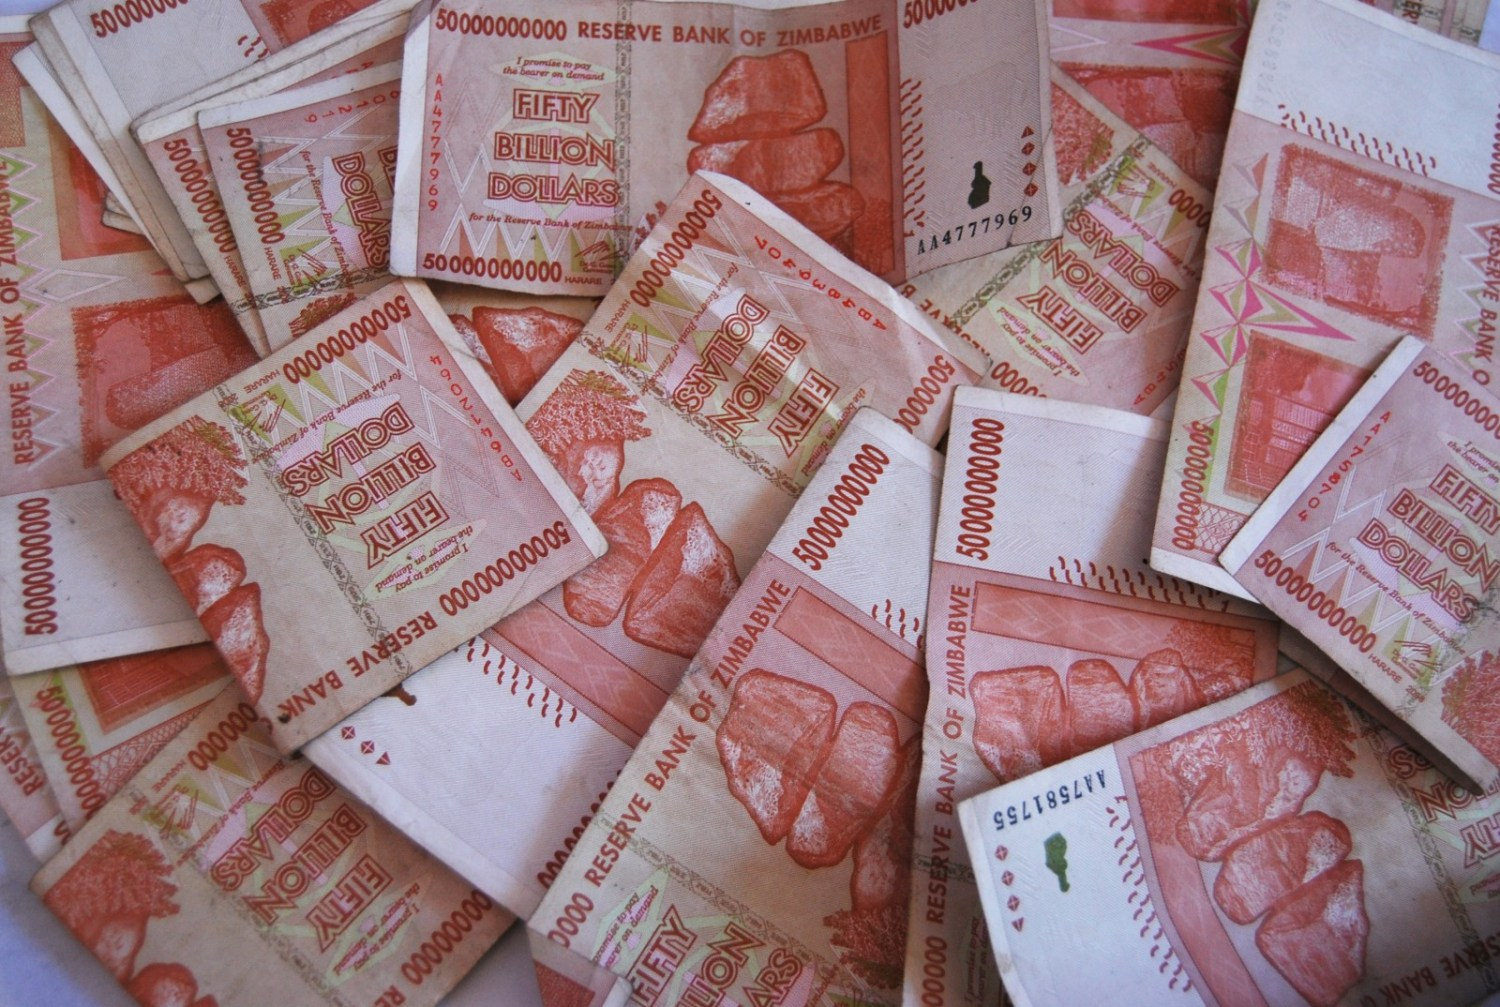 A hyperinflation crisis in Zimbabwe in 2009 forced the government to abandon the country's local currency. Zimbabwe's economy, however, remains weak. Photo courtesy Baynham Goredema via Flickr Creative Commons.